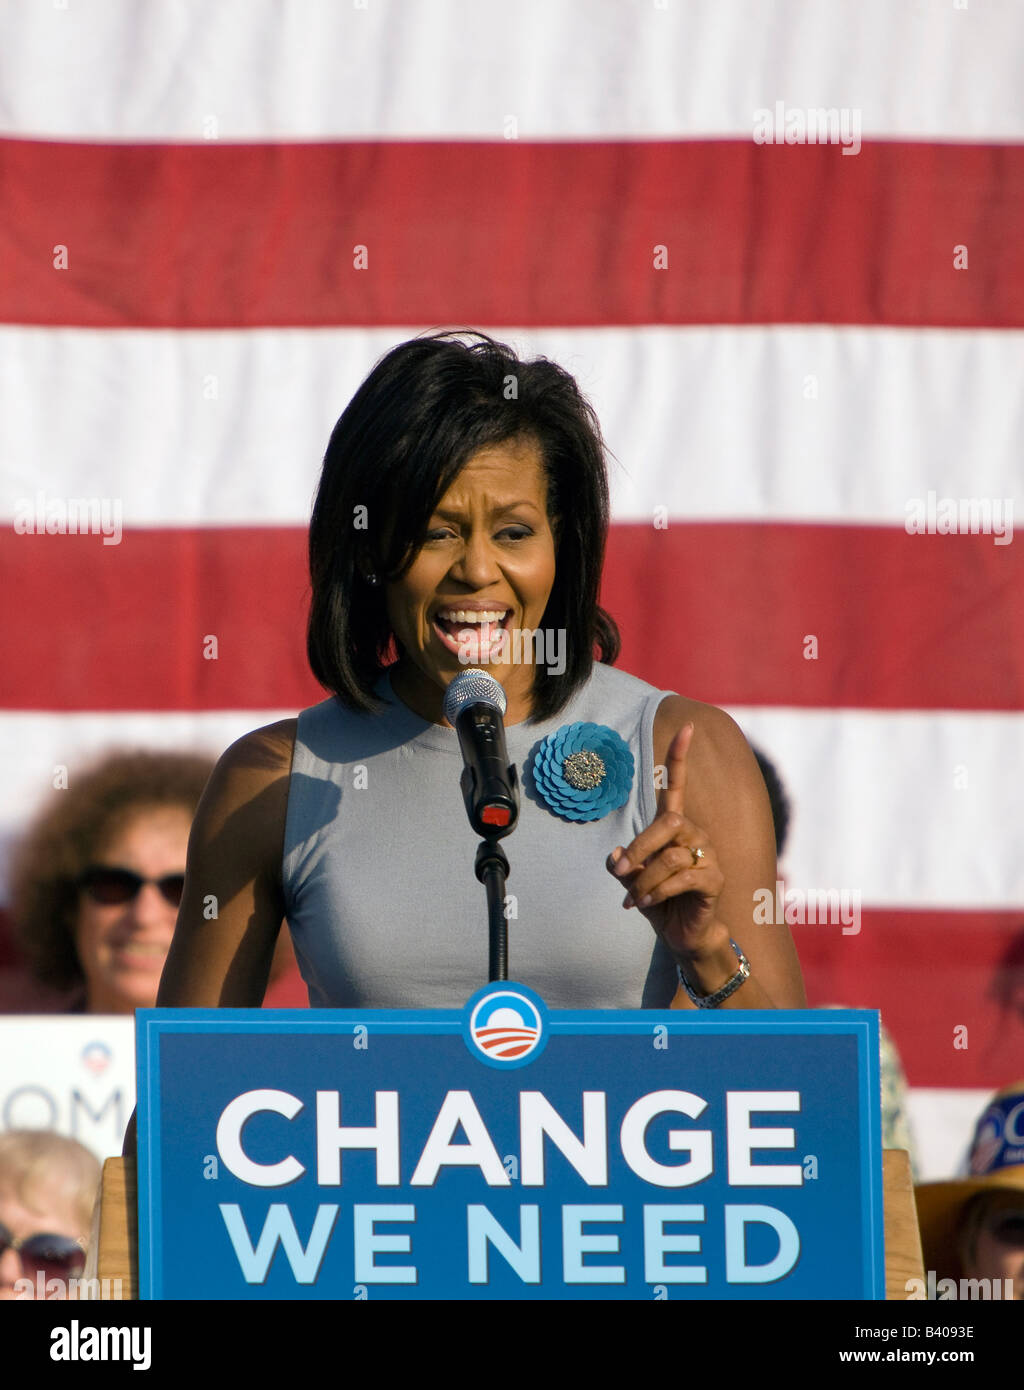 Michelle Obama speaks to supporters at a UVA rally. - Stock Image